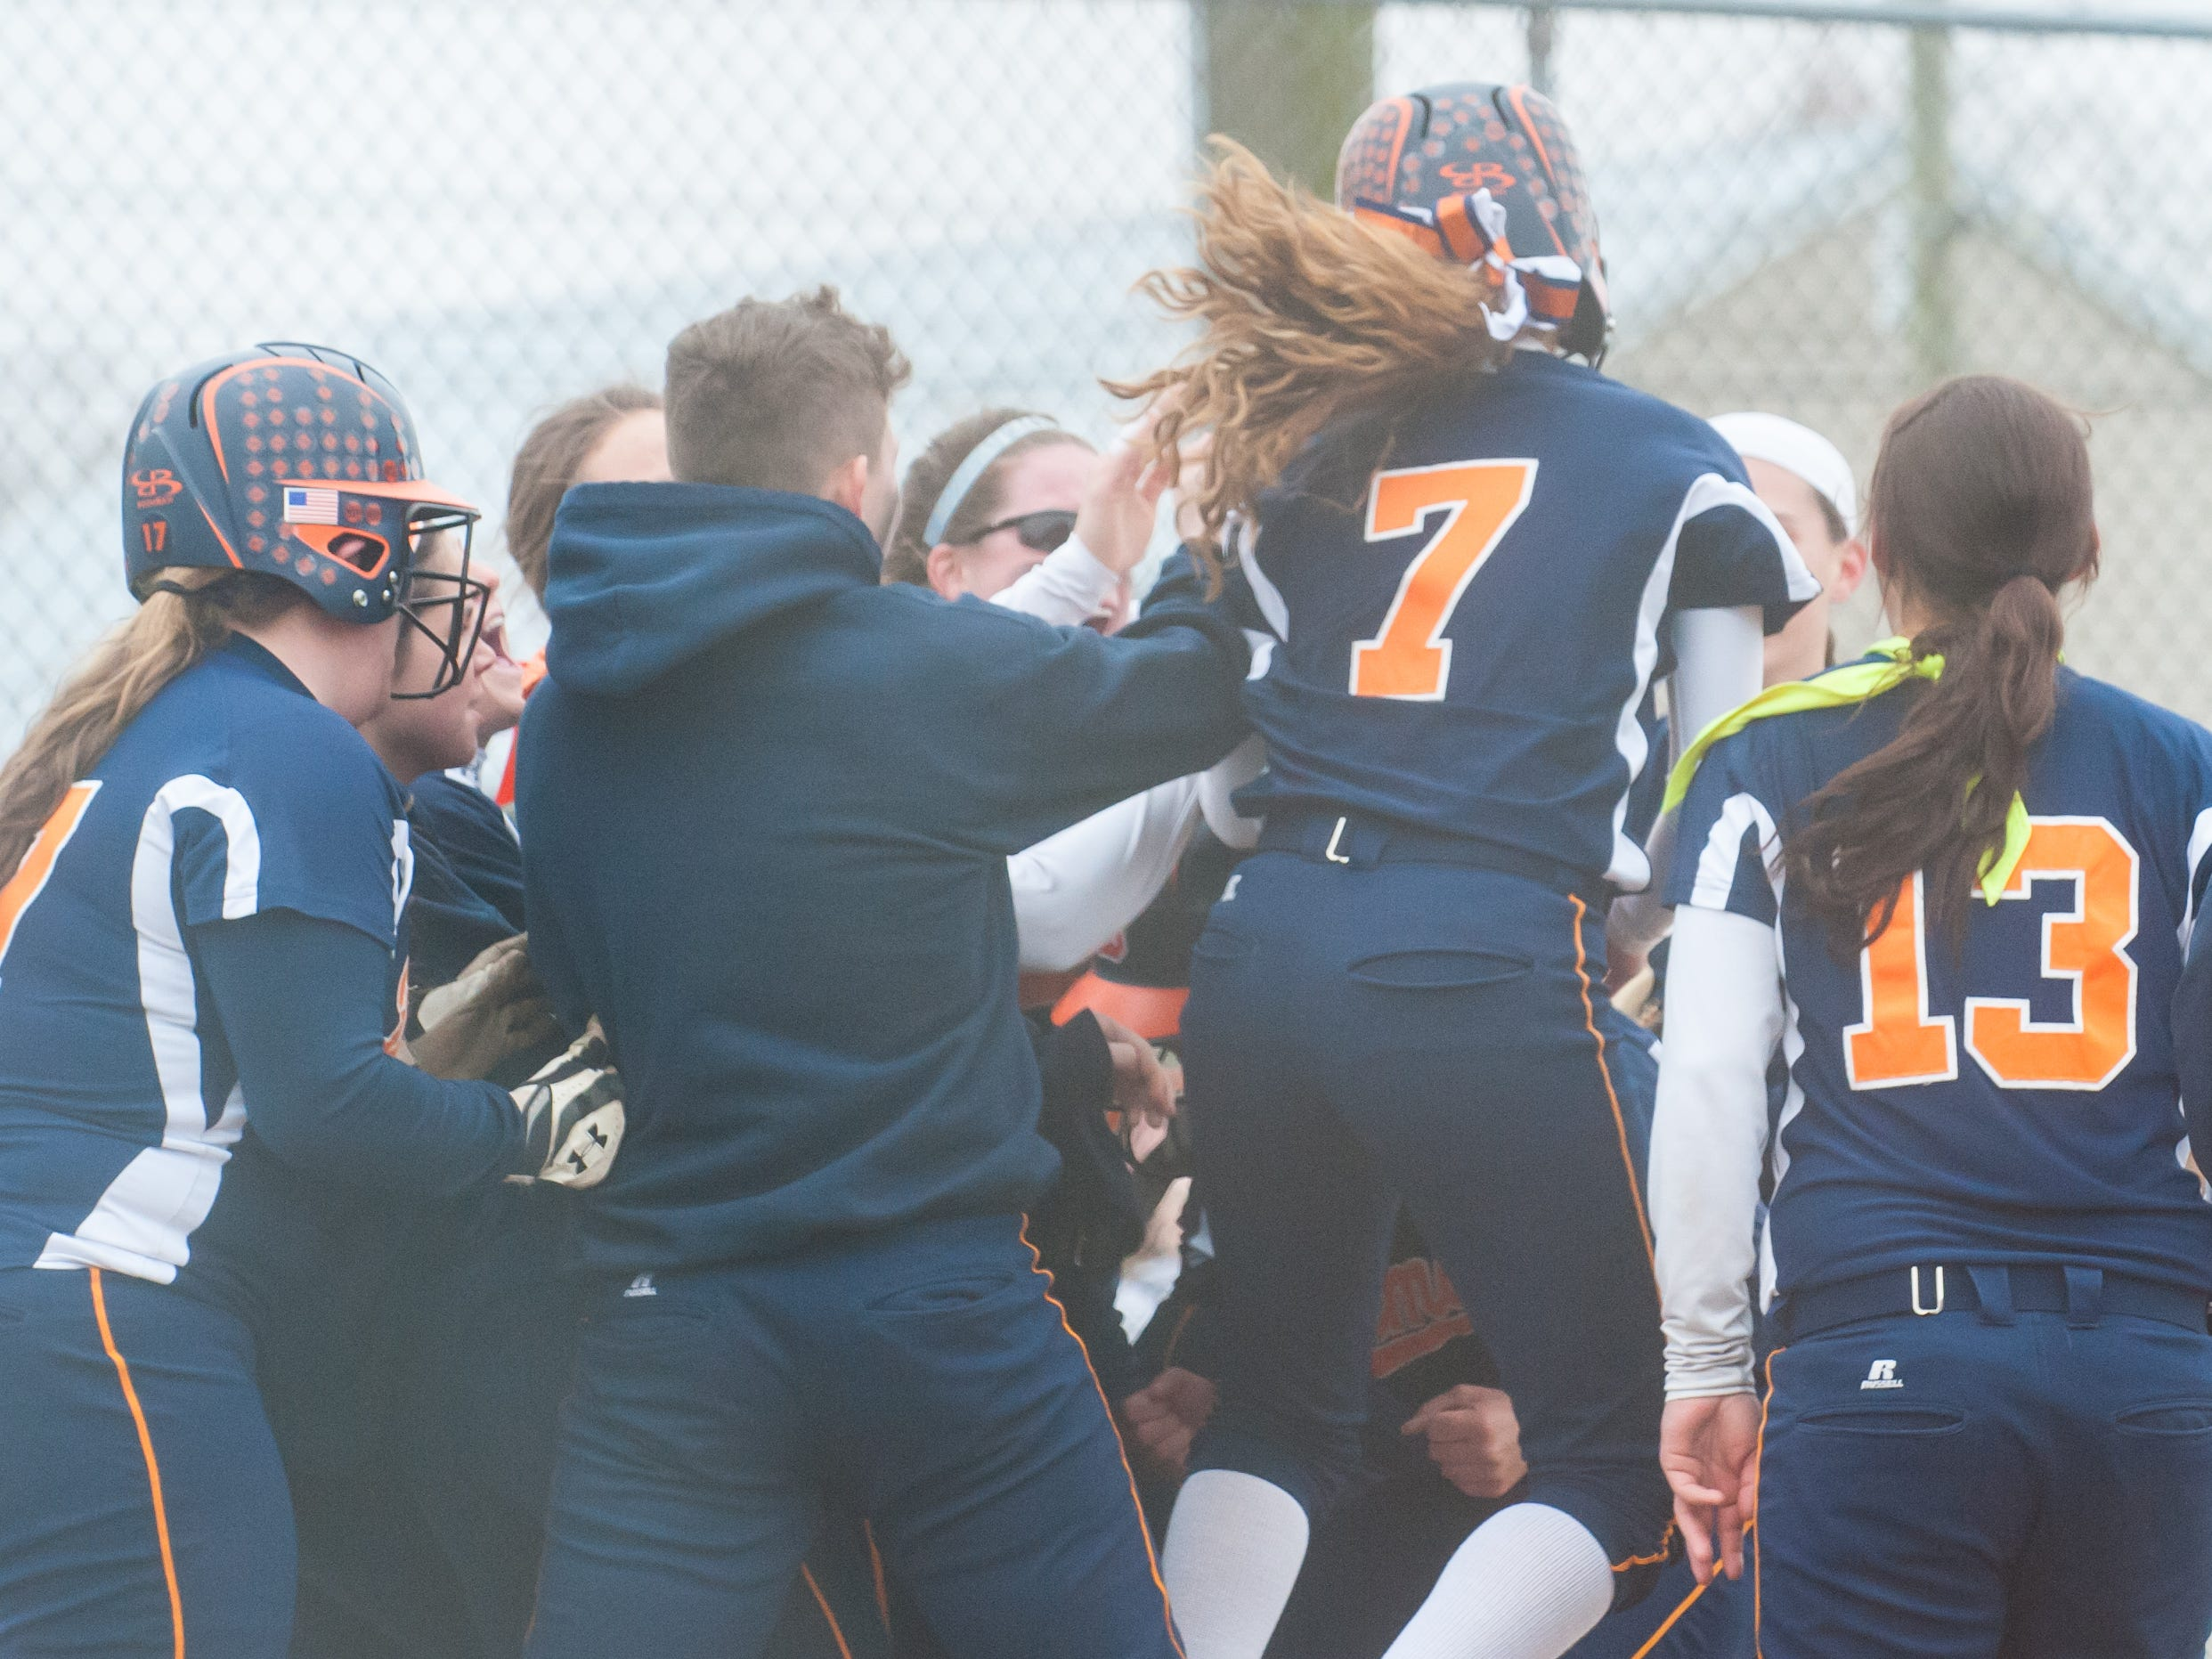 The Delmar softball team celebrates a home run by Shelby Murphy against Laurel at the Laurel Little League Complex on Thursday afternoon.